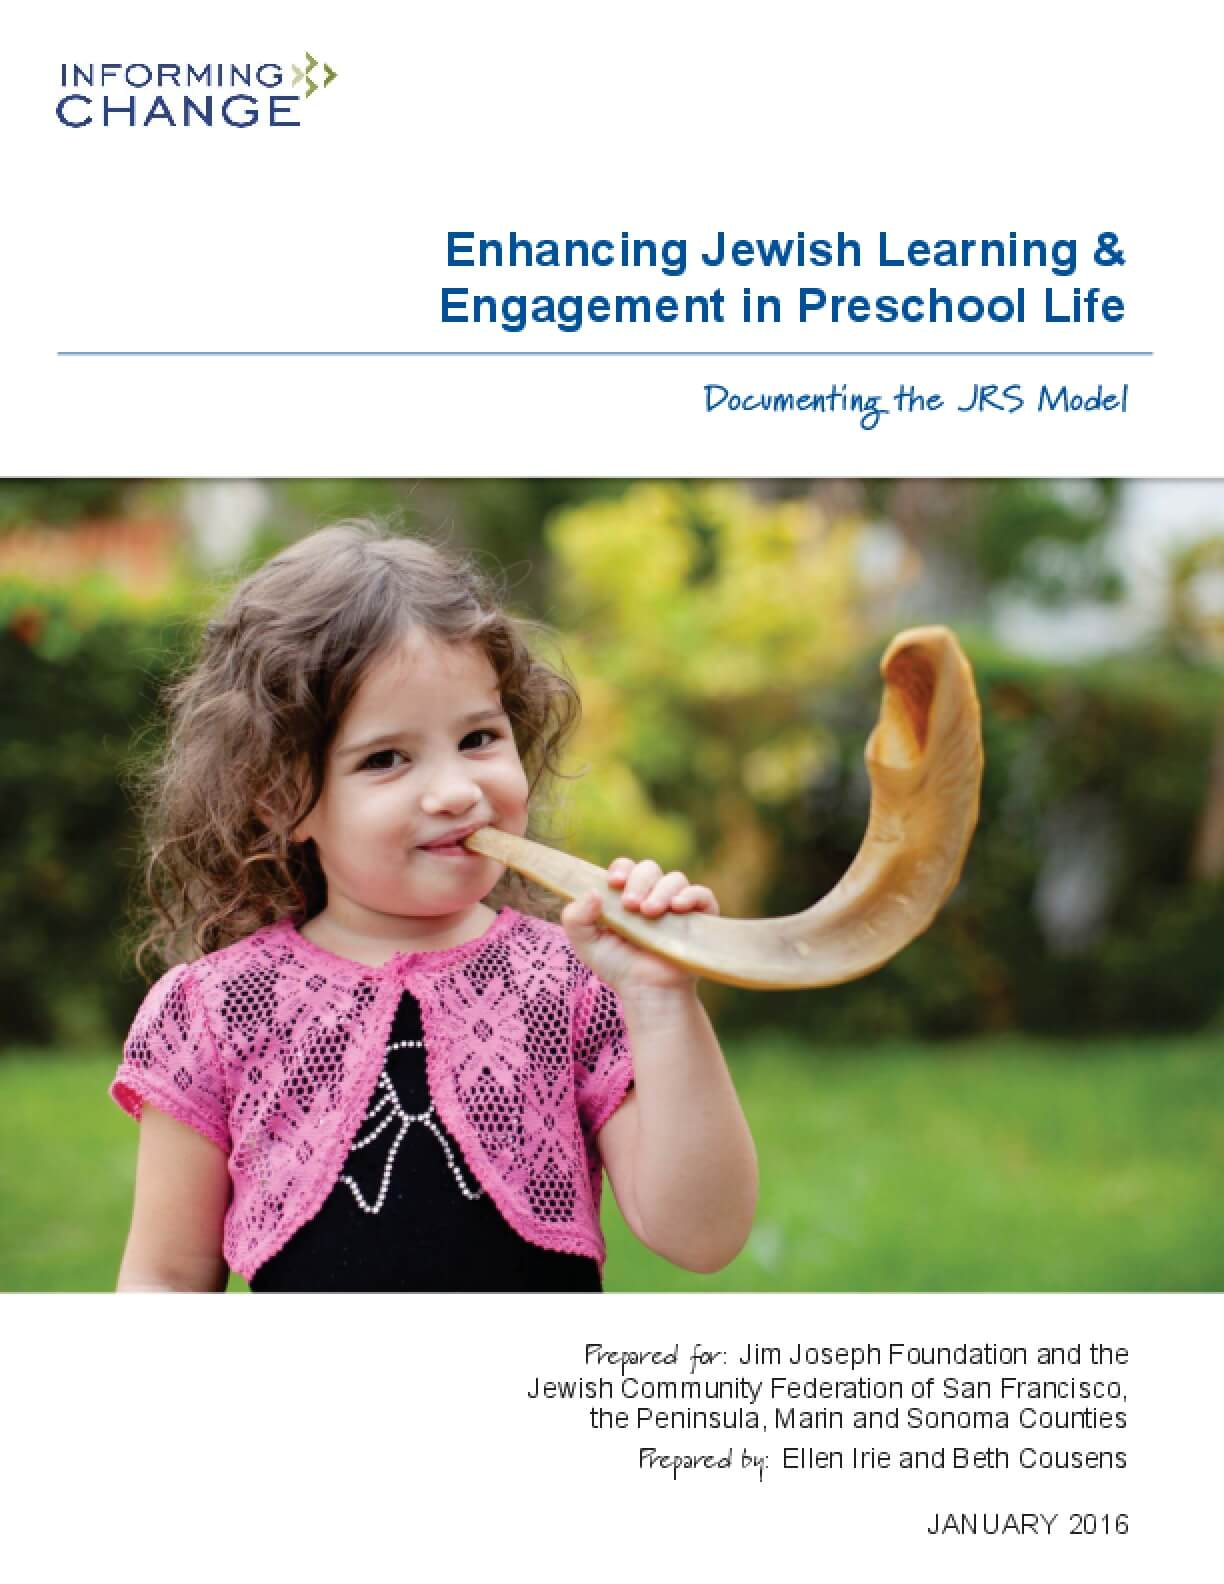 Enhancing Jewish Learning & Engagement in Preschool Life: Documenting the JRS Model